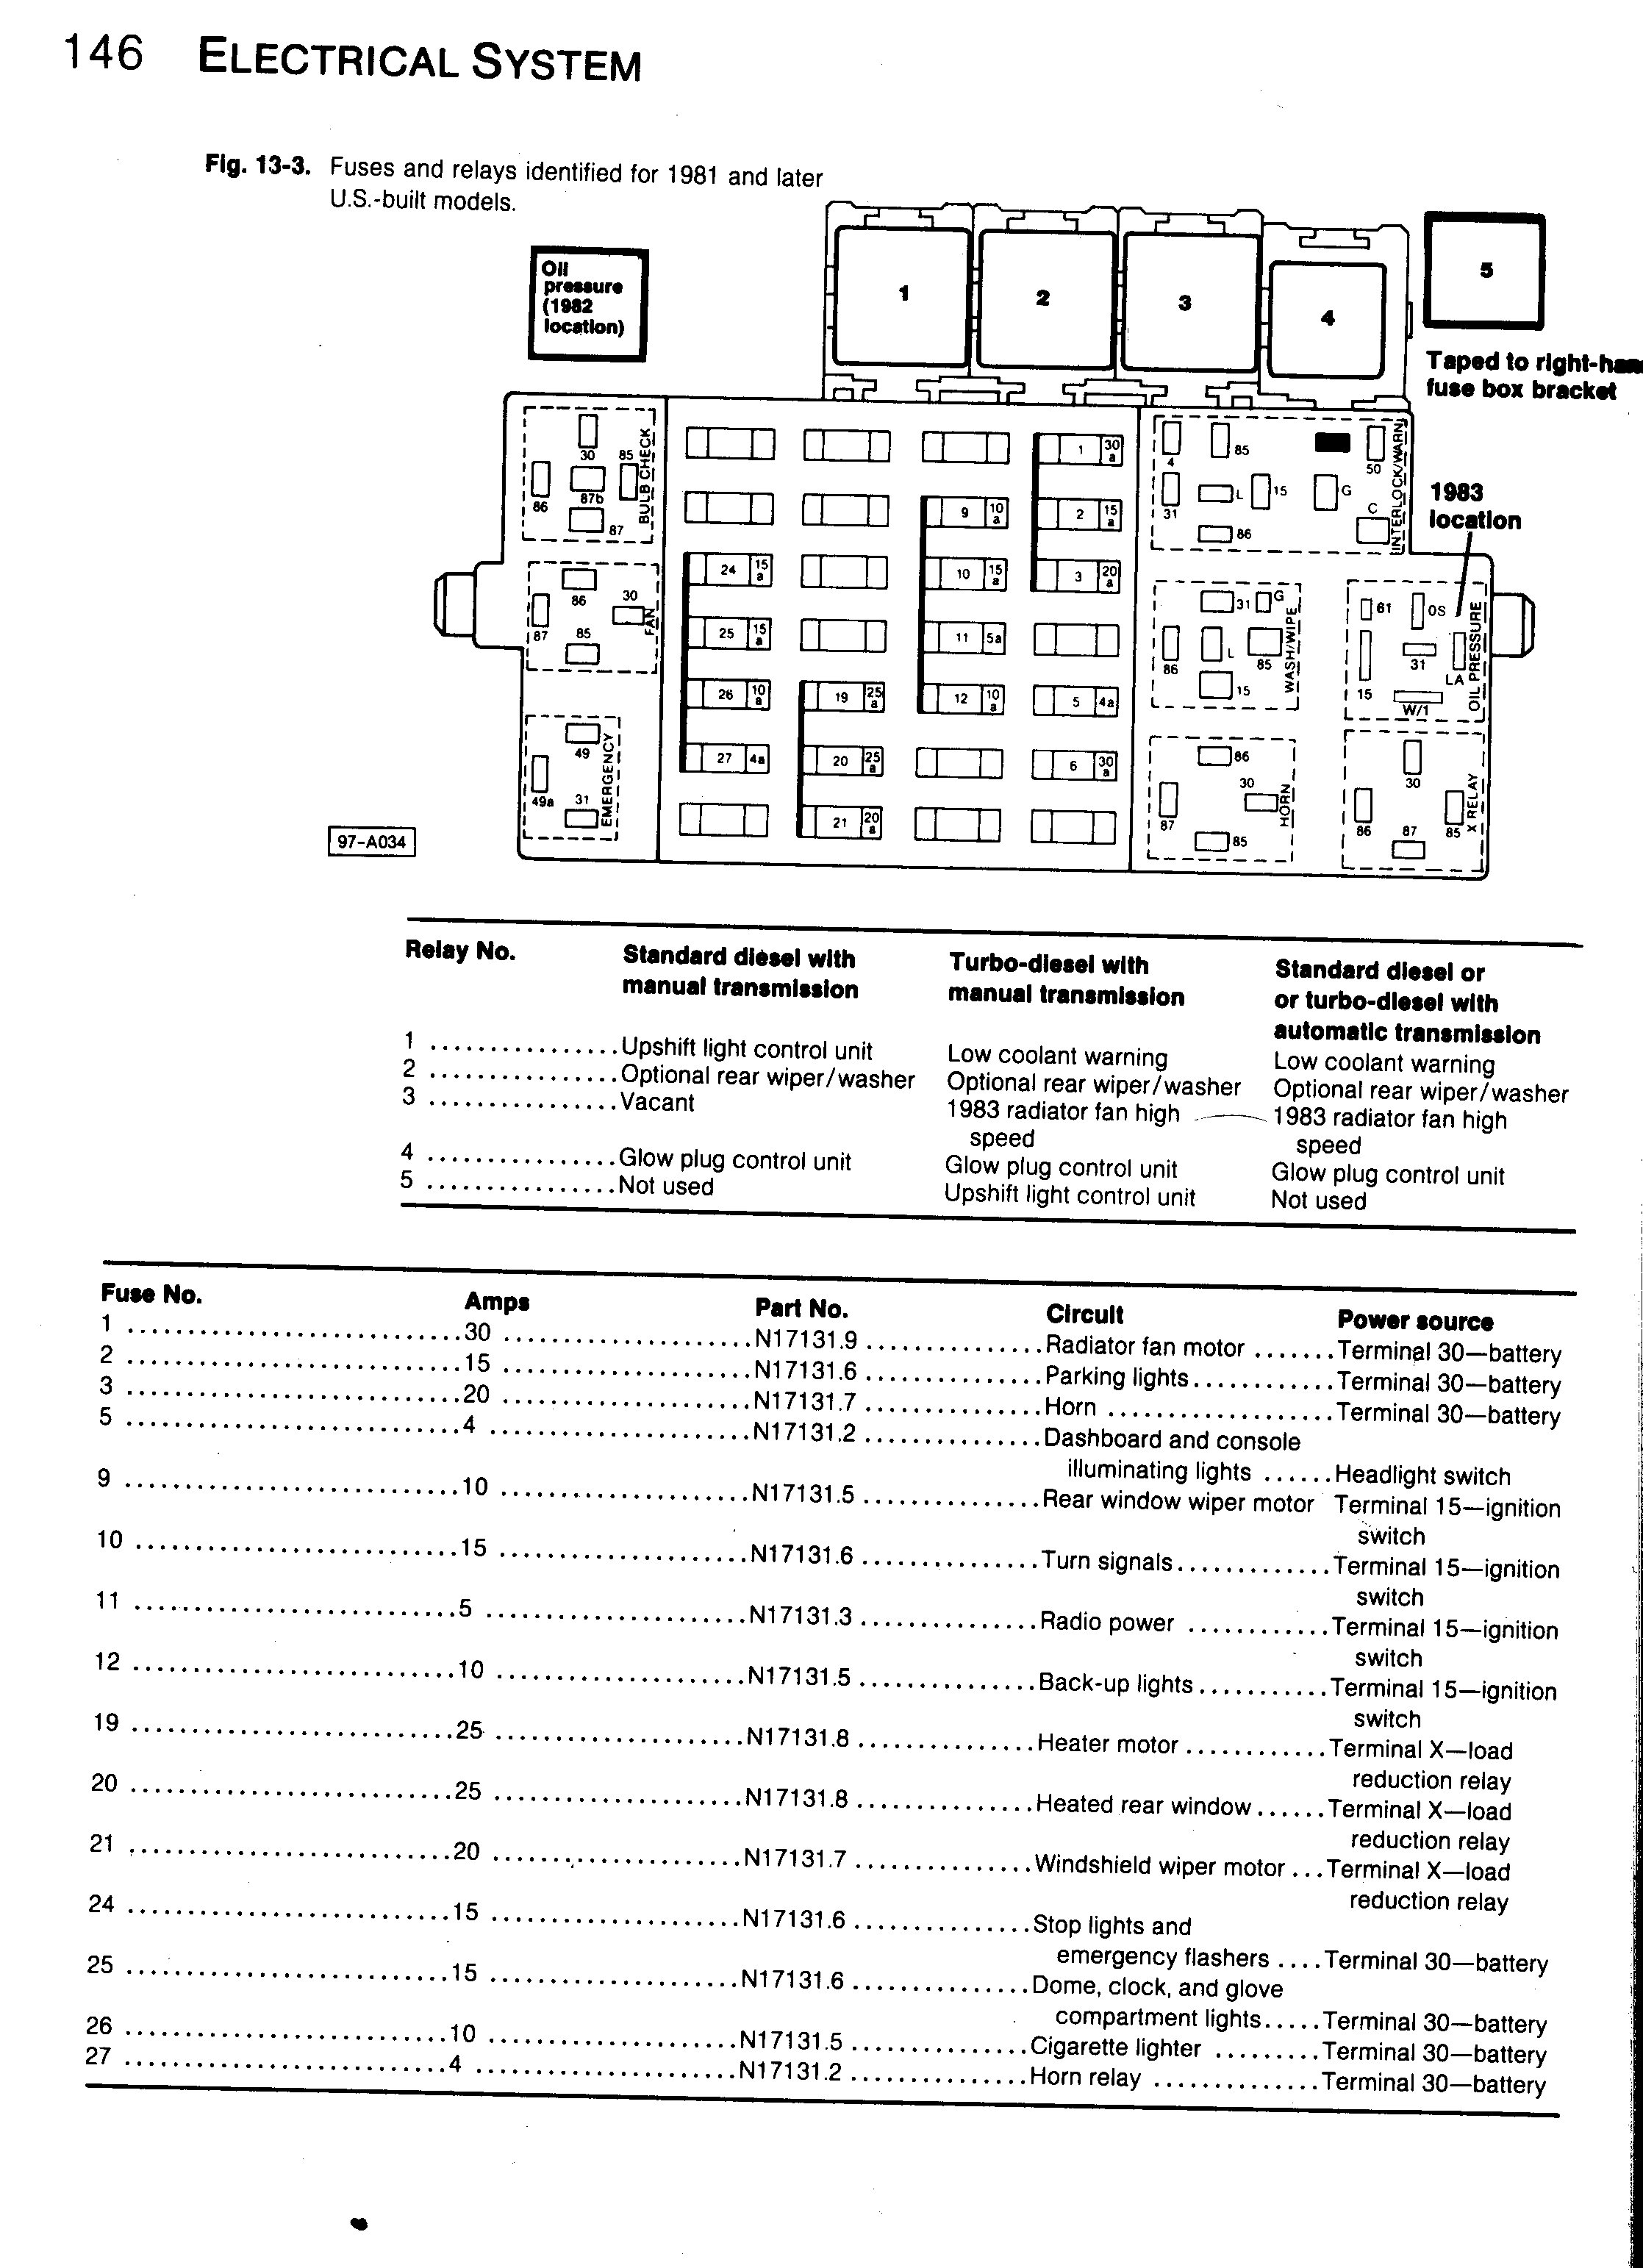 2008 jetta fuse box diagram 2008 wiring diagrams